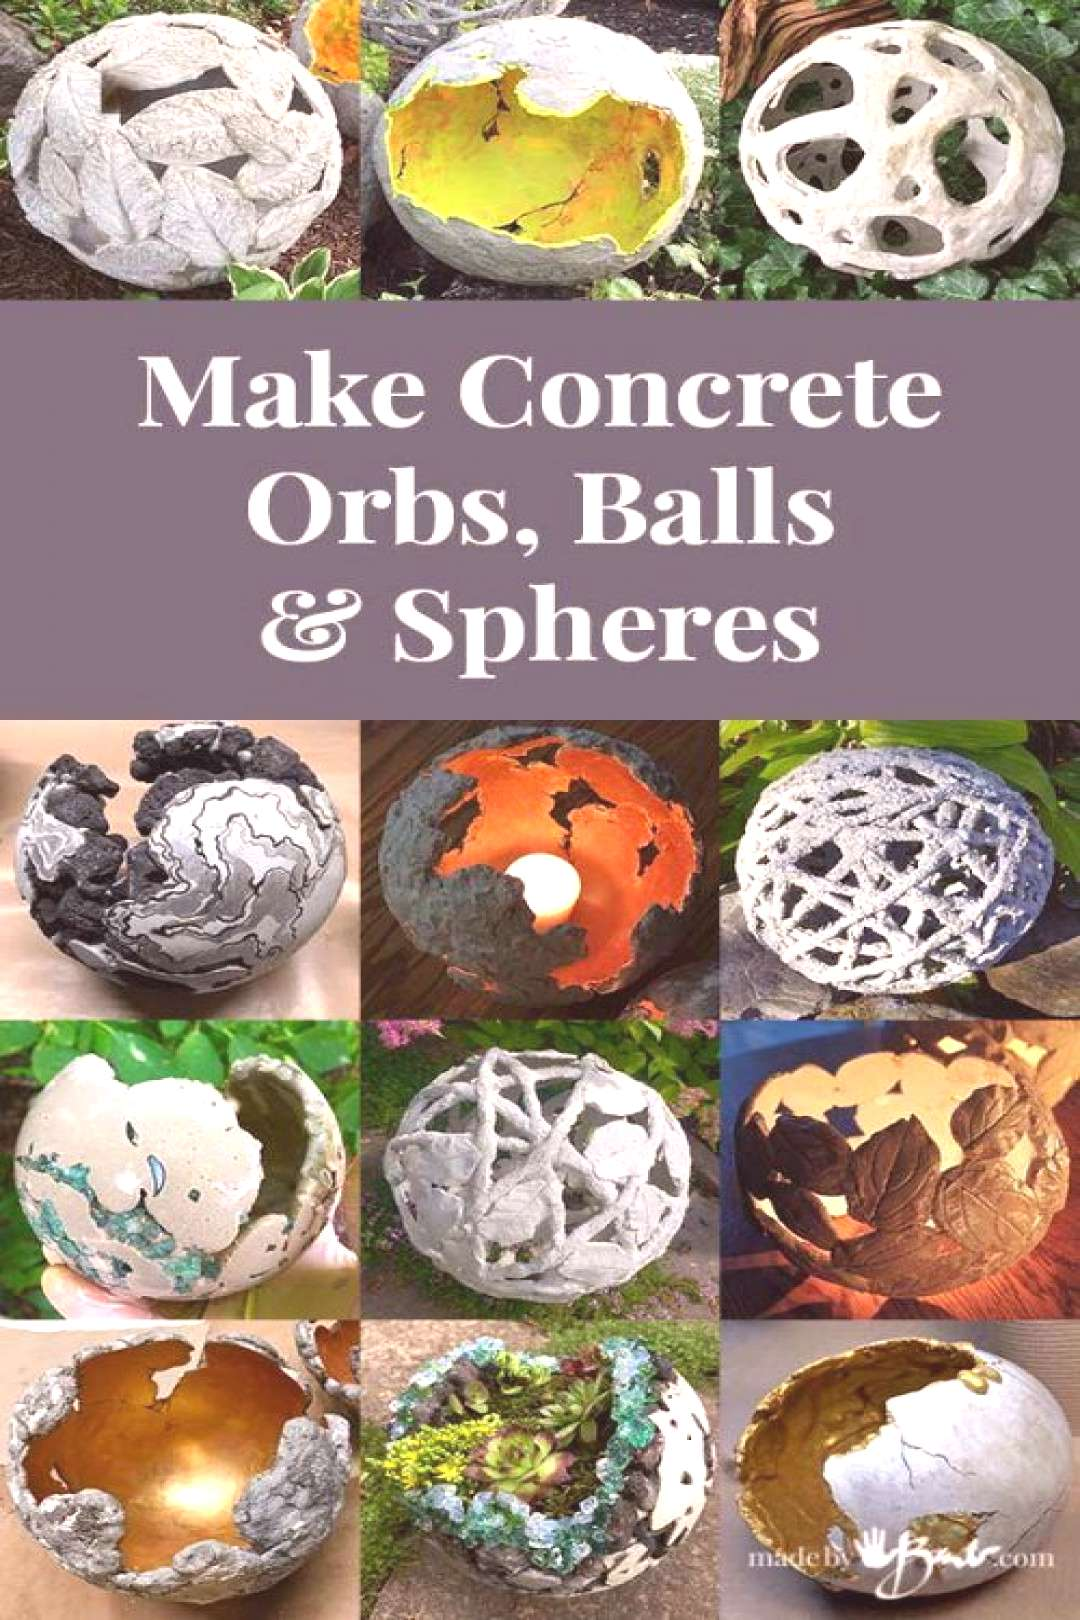 Make Concrete Orbs, Balls amp Spheres - Made By Barb - many tutorials